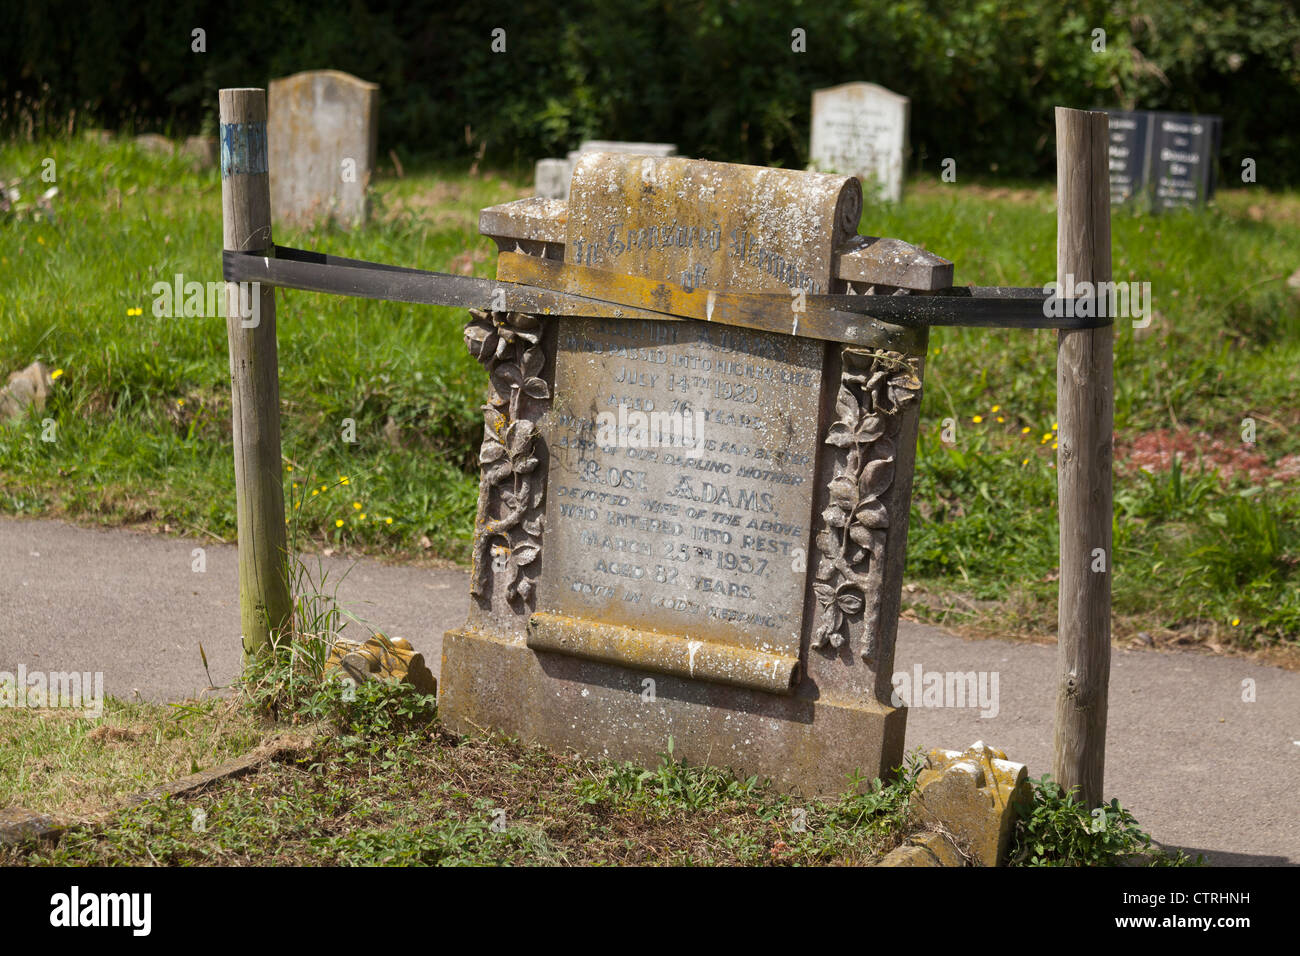 Gravestone headstone supported by starpping and wooden stakes in graveyard - Stock Image